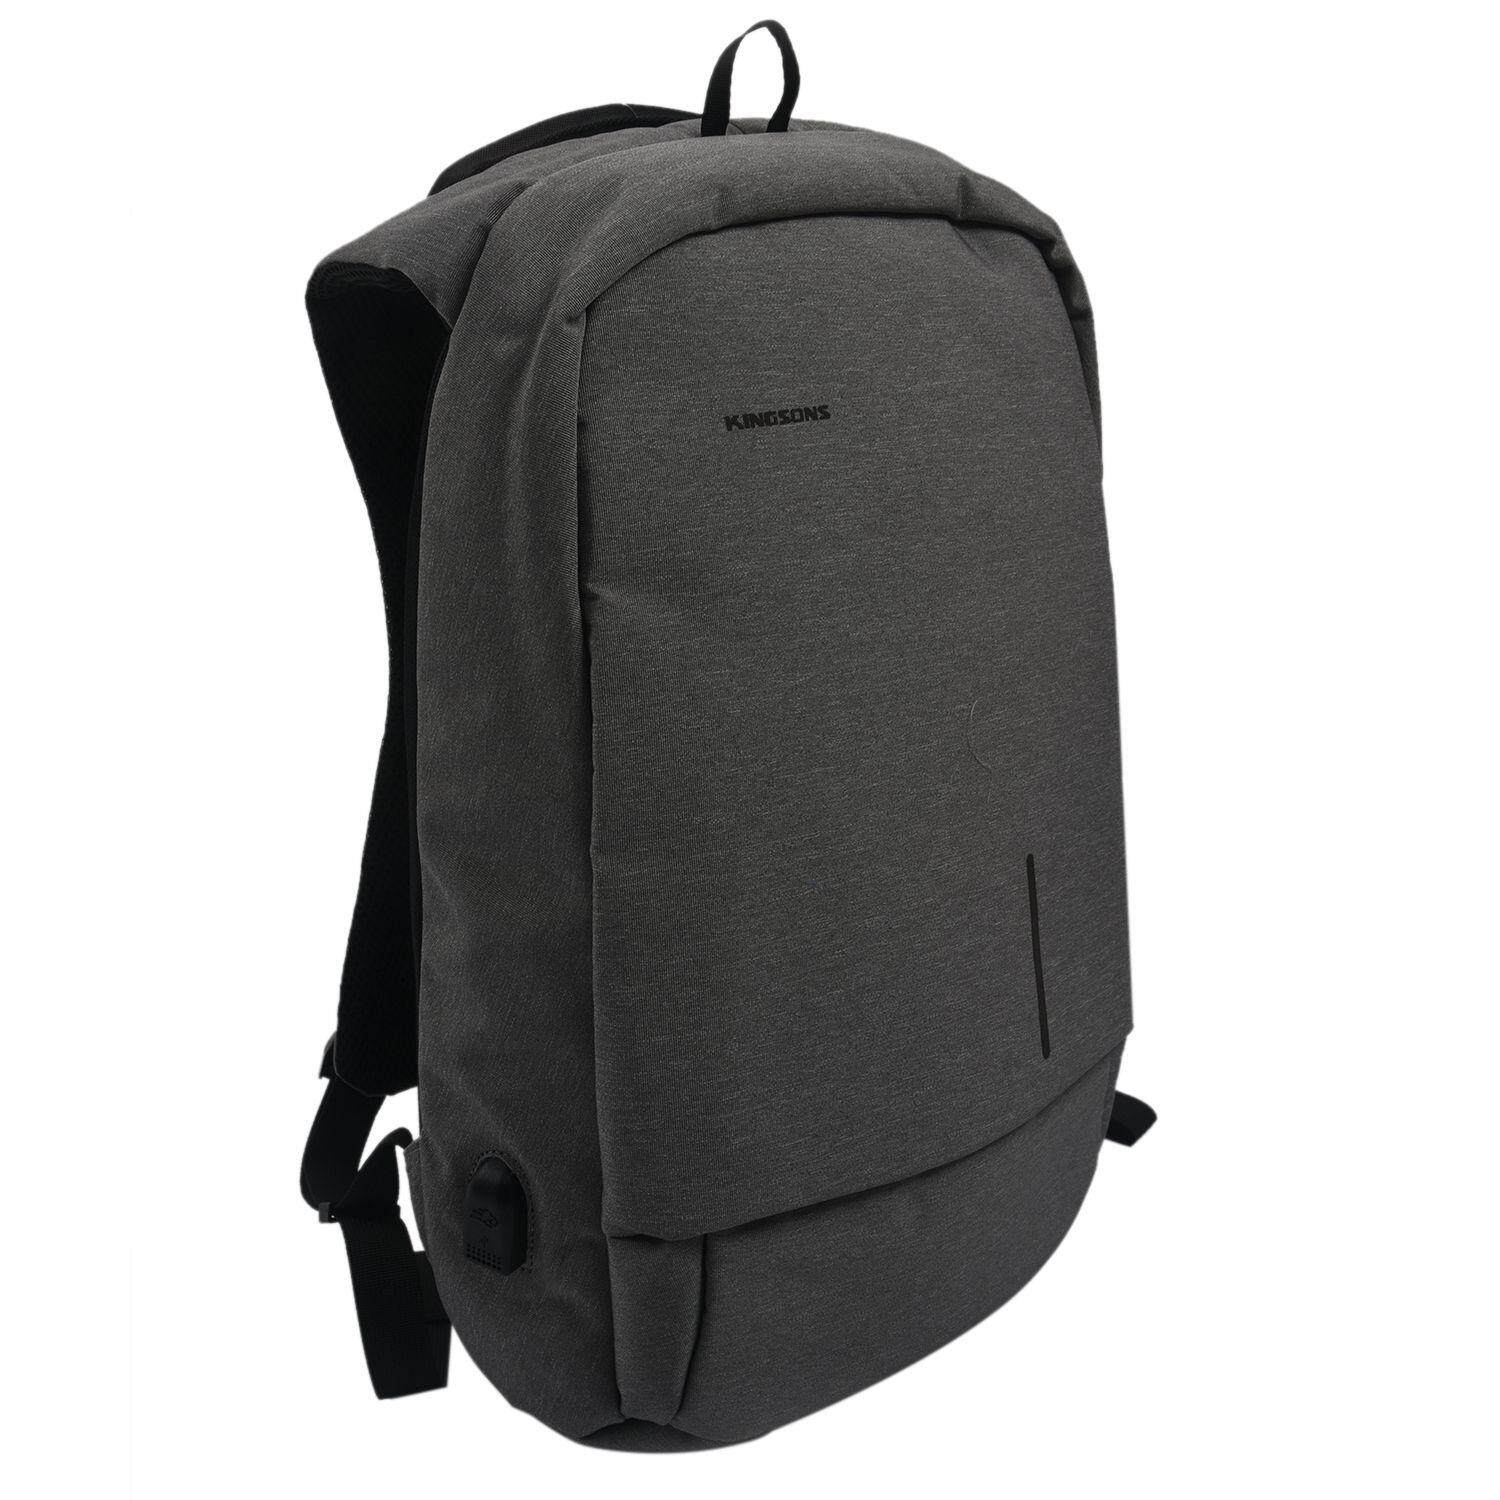 7eb4e3ff4a Kingsons Anti-Theft Backpack USB and charging port Fashion Anti-Rain Laptop    Tablet